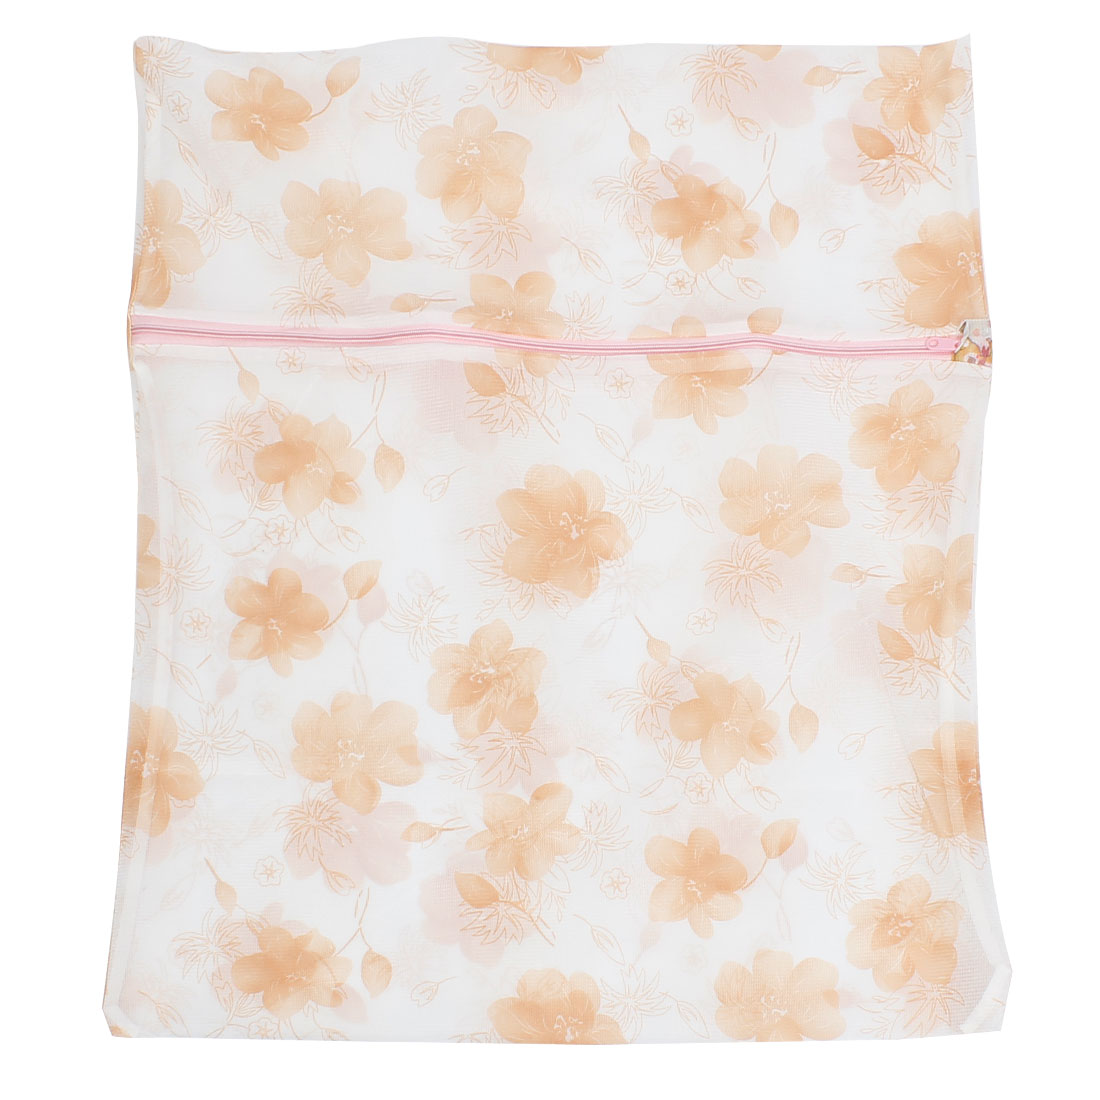 Zippered Orange Flower Prints Nylon Mesh Clothes Wash Washing Bag 58cm x 48cm